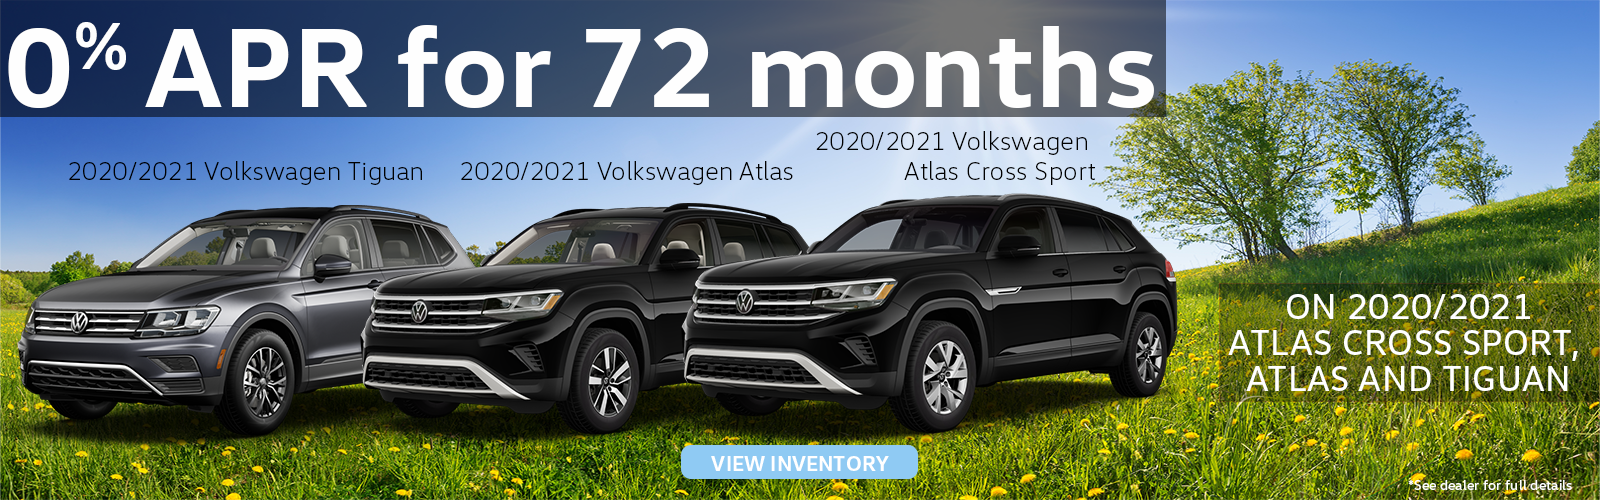 March 2021_0% APR_Sutliff VW